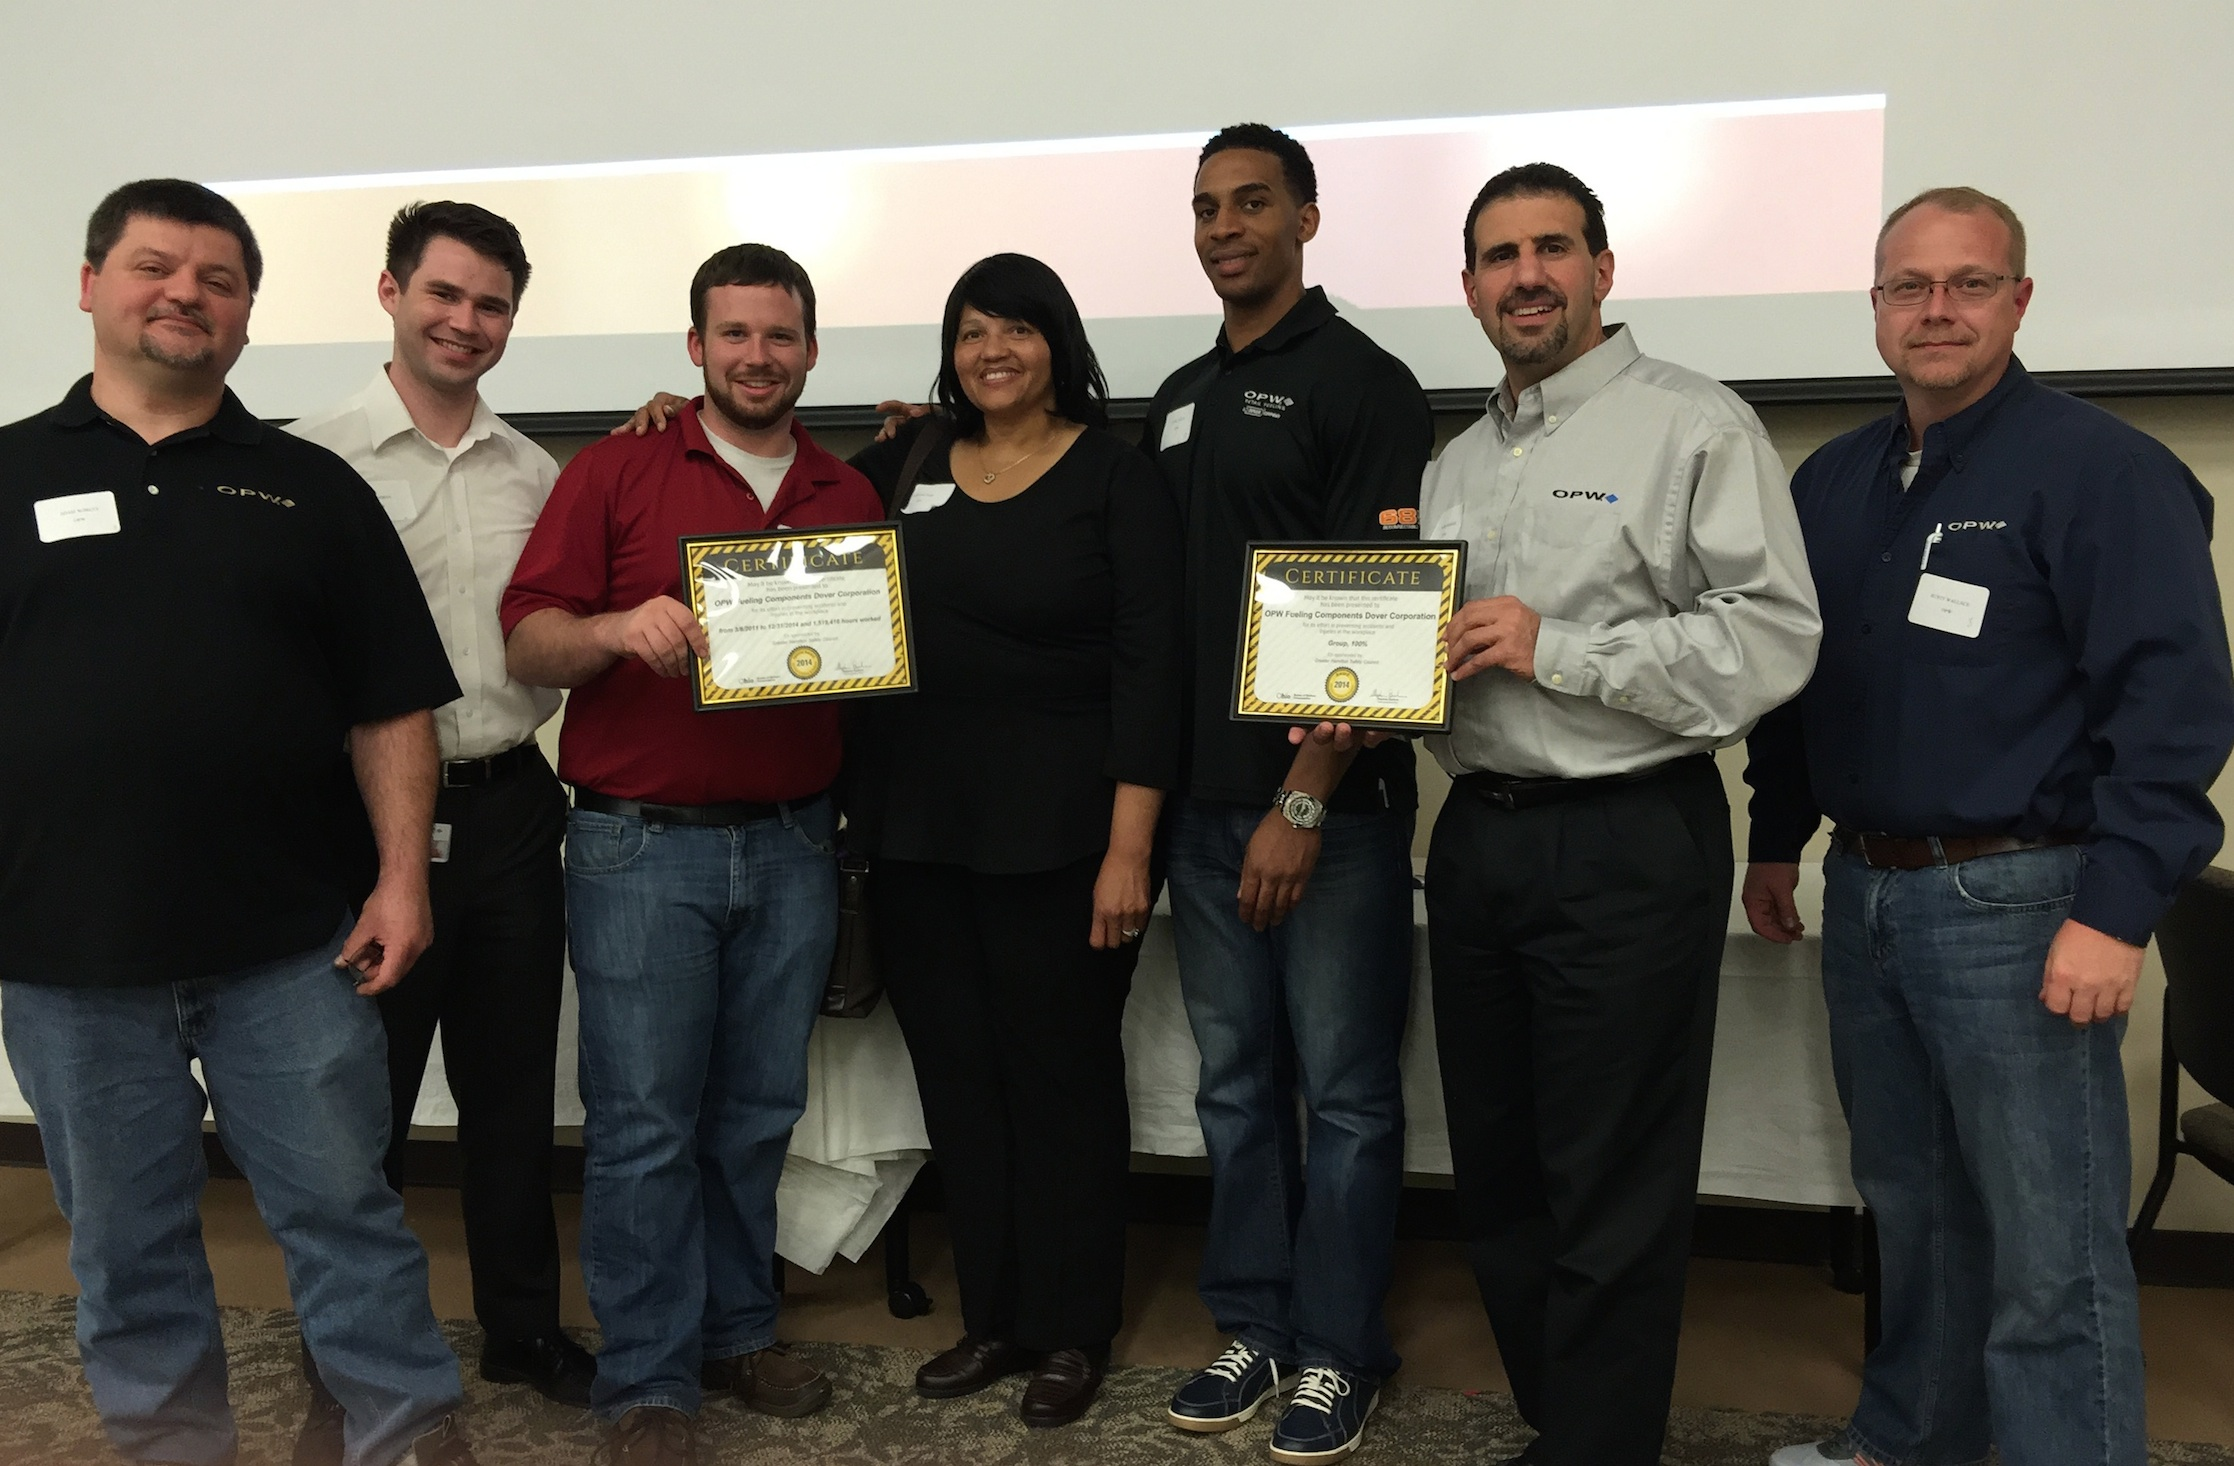 OPW Employees Receive Award